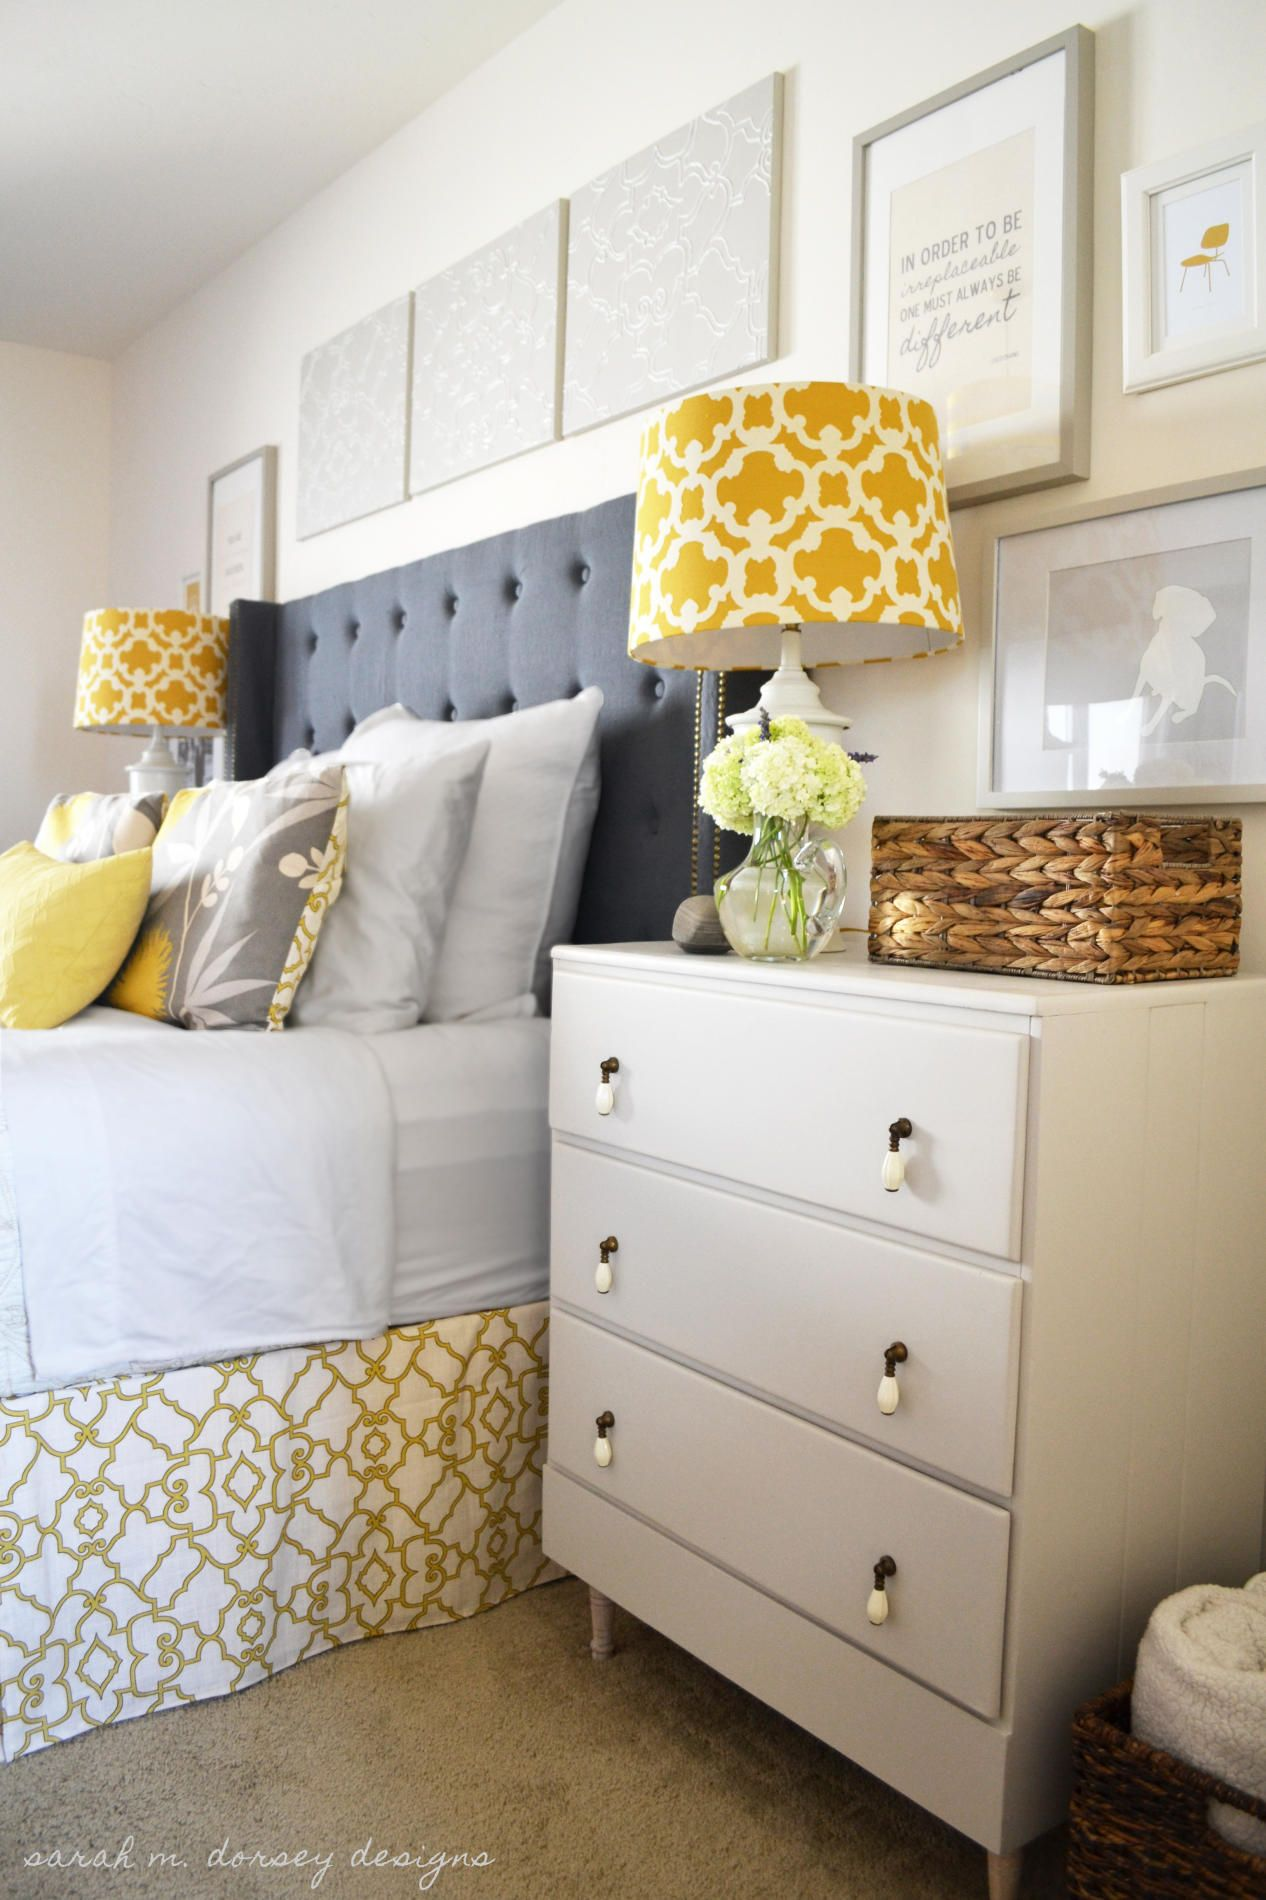 Mirror nightstands contemporary bedroom kimberley seldon design - Guest Room For A White Nightstand White Lamp Base And Yellow Lamp Shade